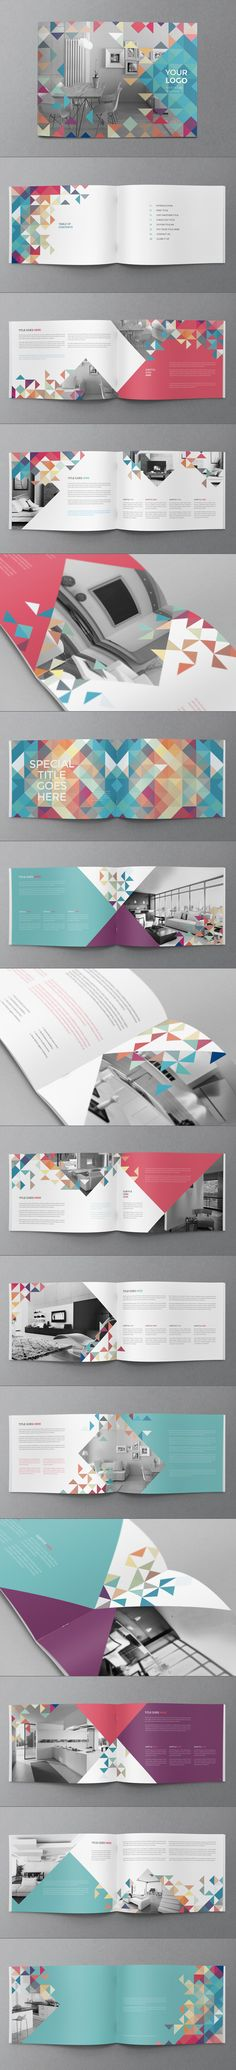 Minimal Colorful Brochure. Download here: http://graphicriver.net/item/minimal-colorful-brochure/8232684?ref=abradesign #design #brochure